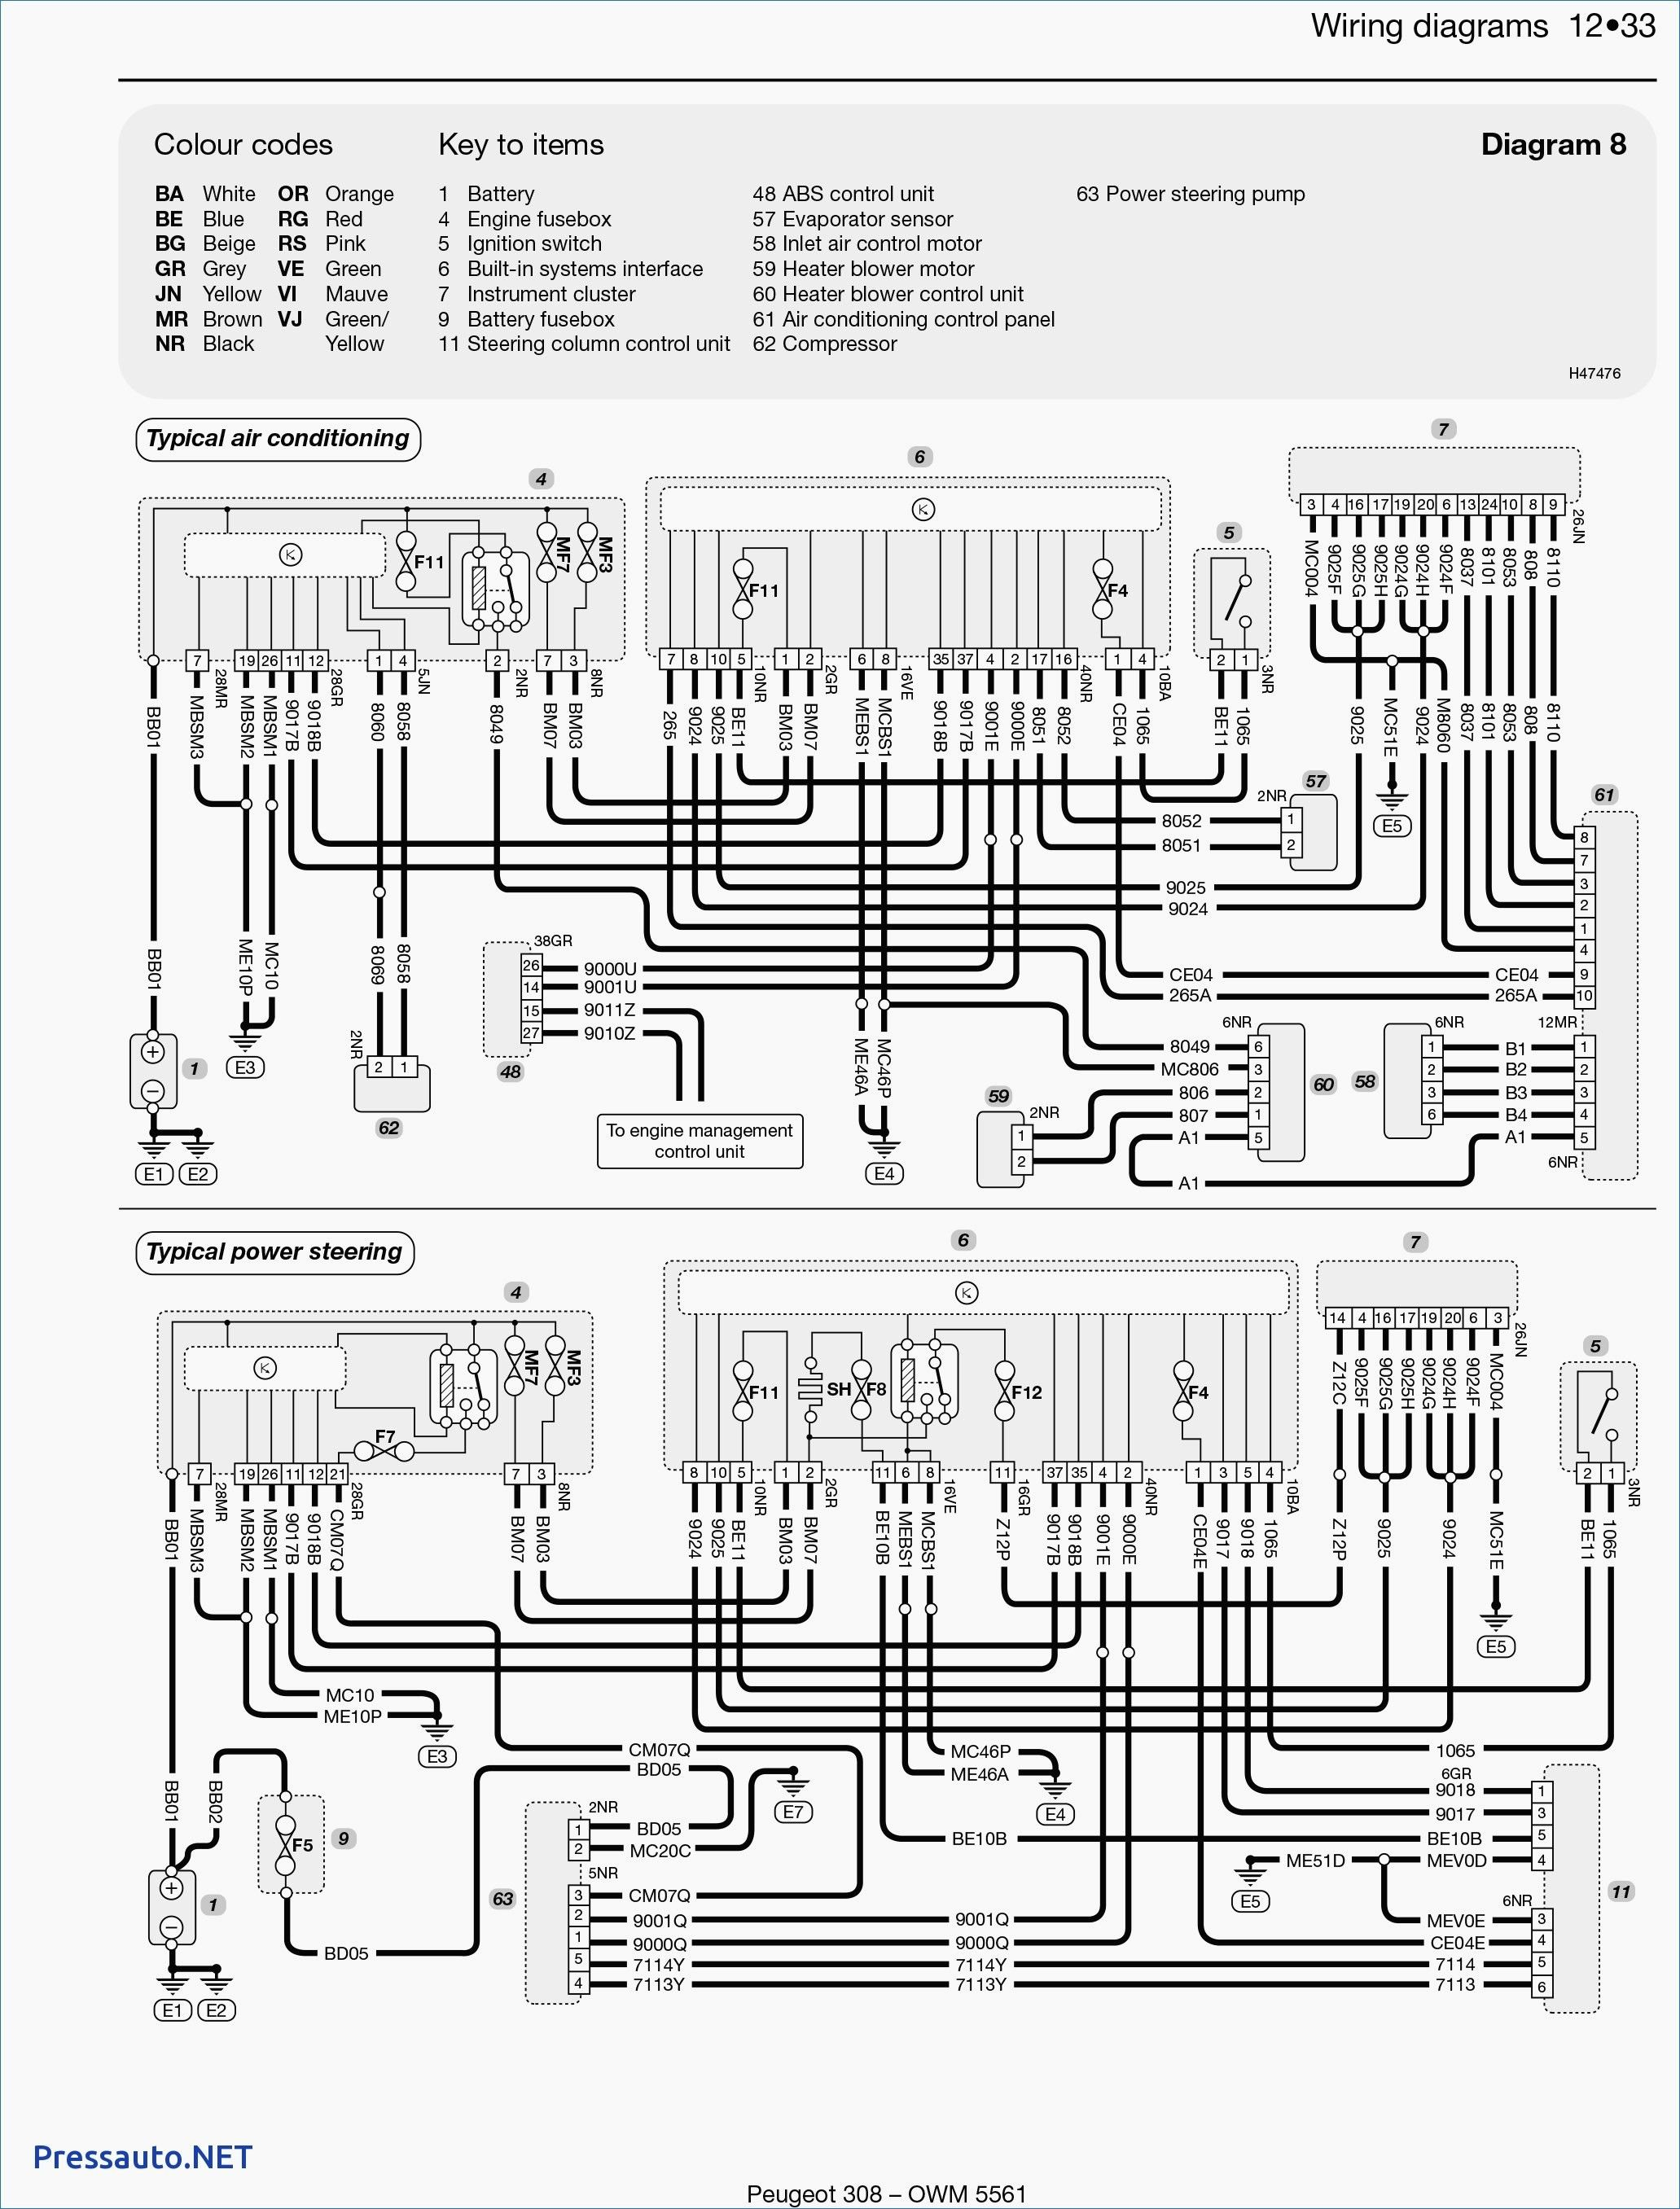 peugeot expert wiring yia carter co uk \u2022 Fiat Scudo collection peugeot partner wiring diagram pictures diagrams 13 rh 13 beyonddogs nl peugeot expert wiring peugeot expert wiring diagram download